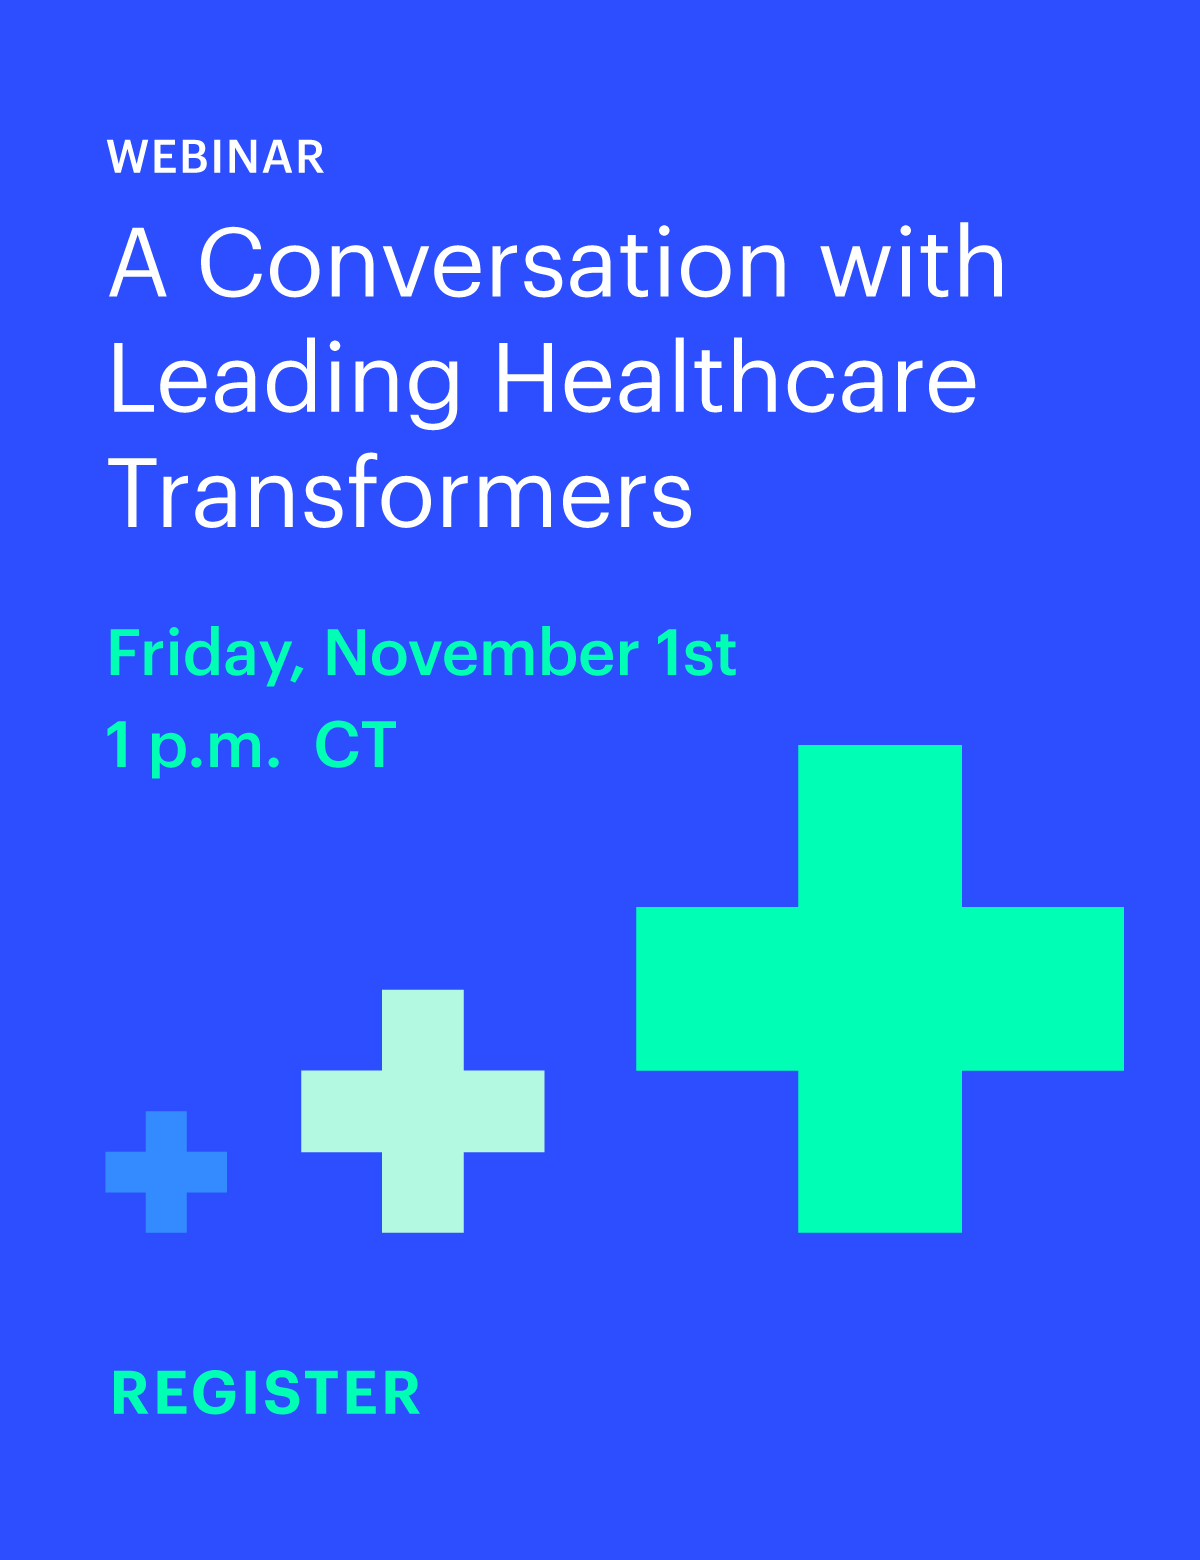 Webinar: A Conversation with Leading Healthcare Transformers